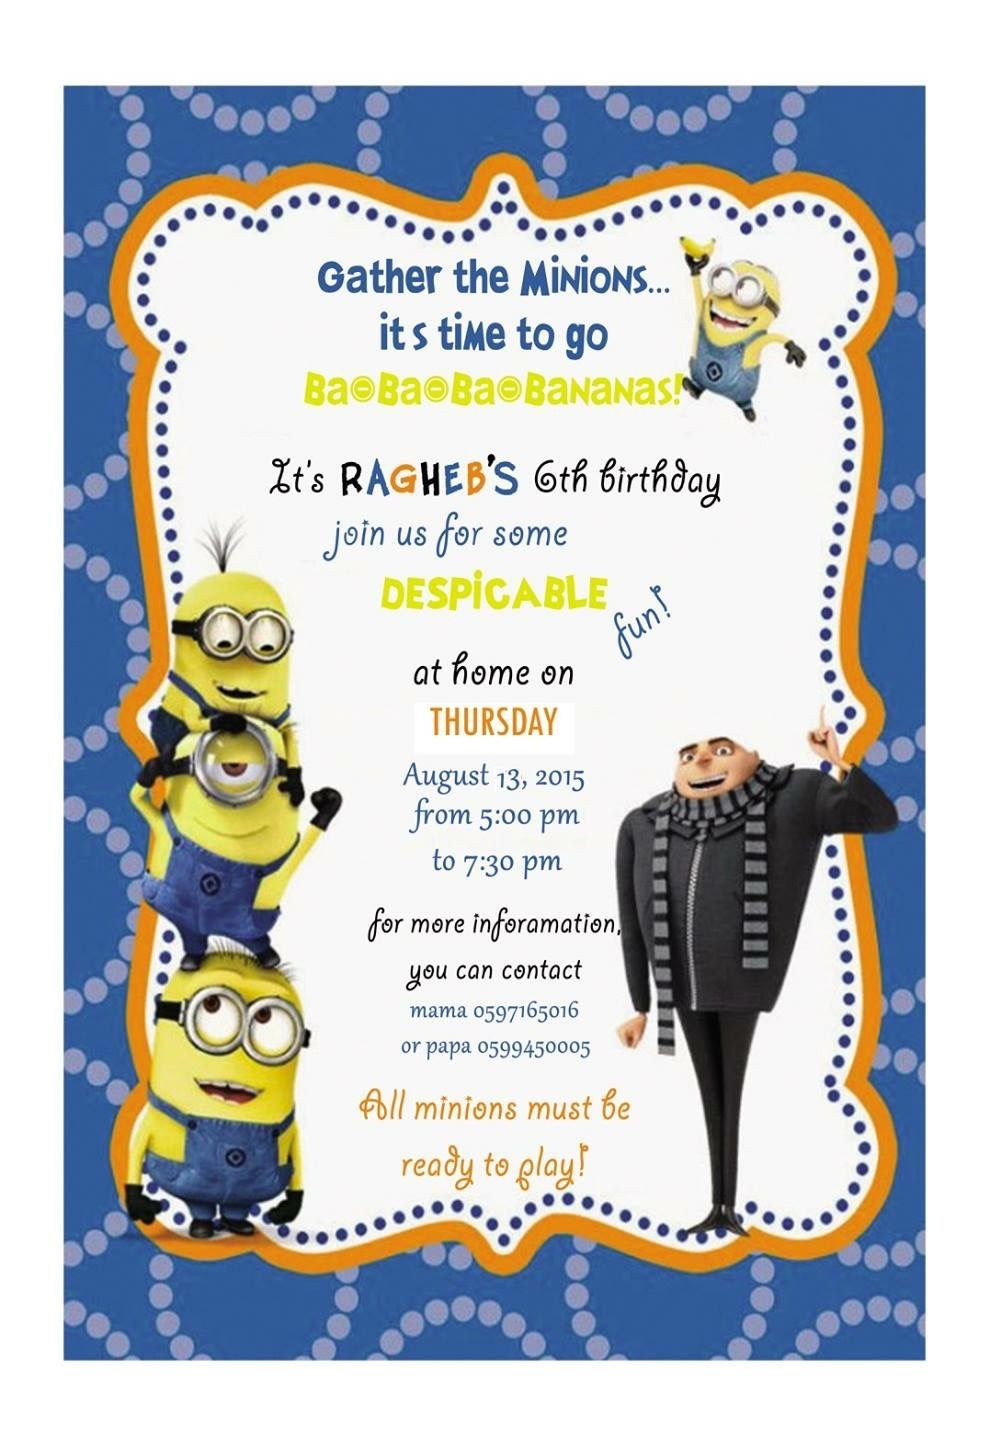 Despicable Me Birthday Party Invitation Card Minions Birthday